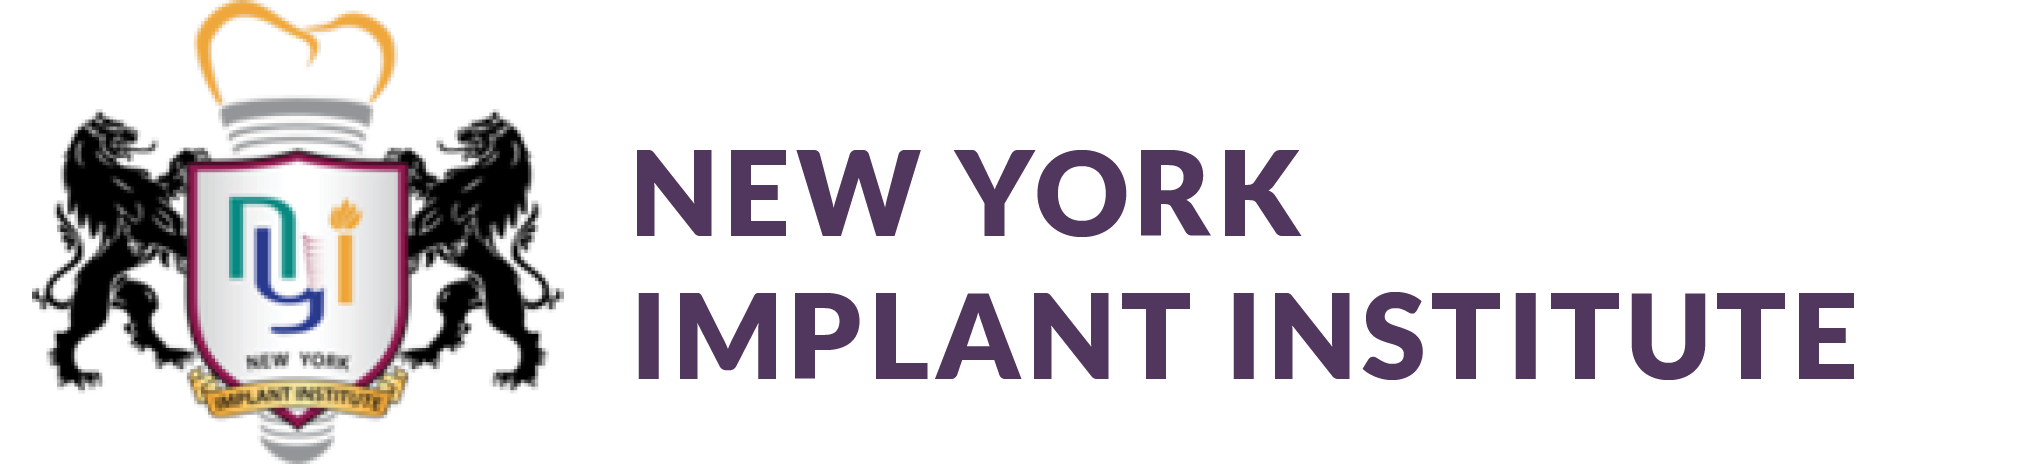 new york implant institute logo